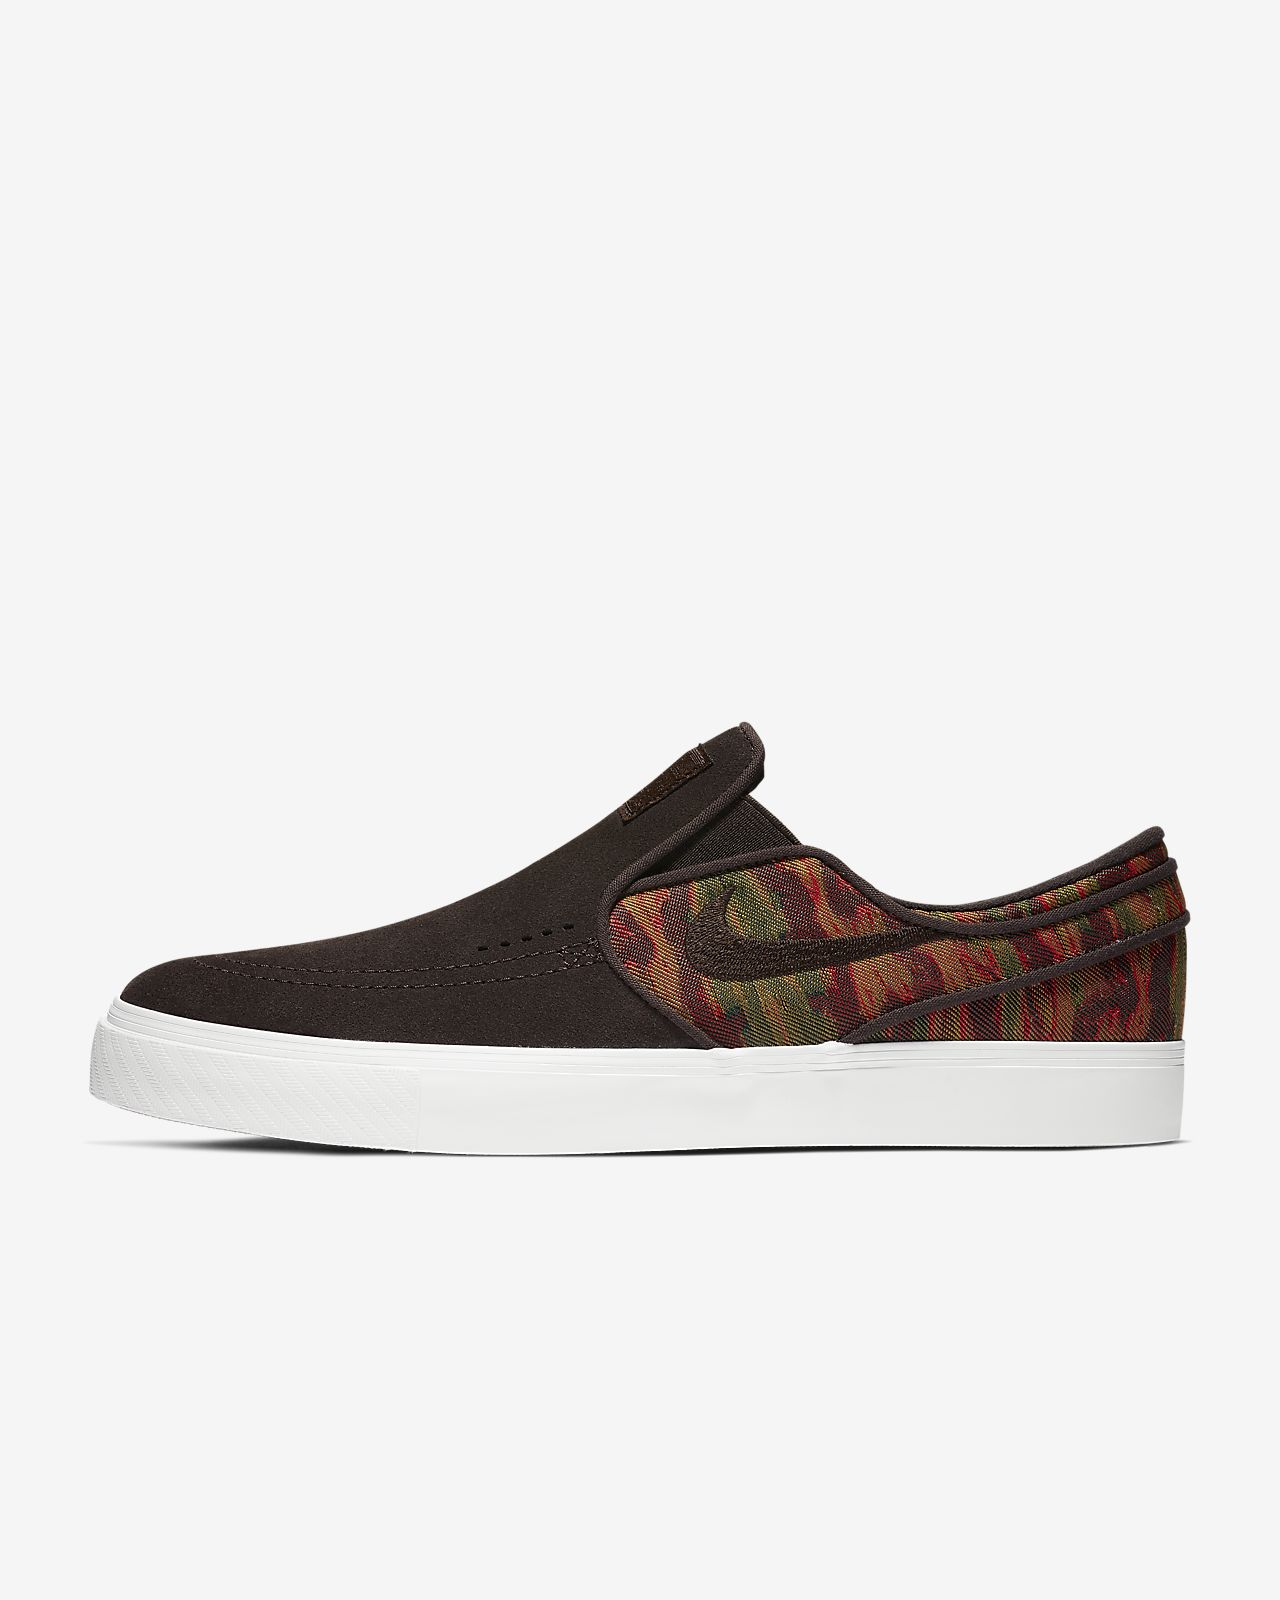 super cute c64a9 d8367 ... Nike SB Zoom Stefan Janoski Slip-On Premium Men s Skateboarding Shoe